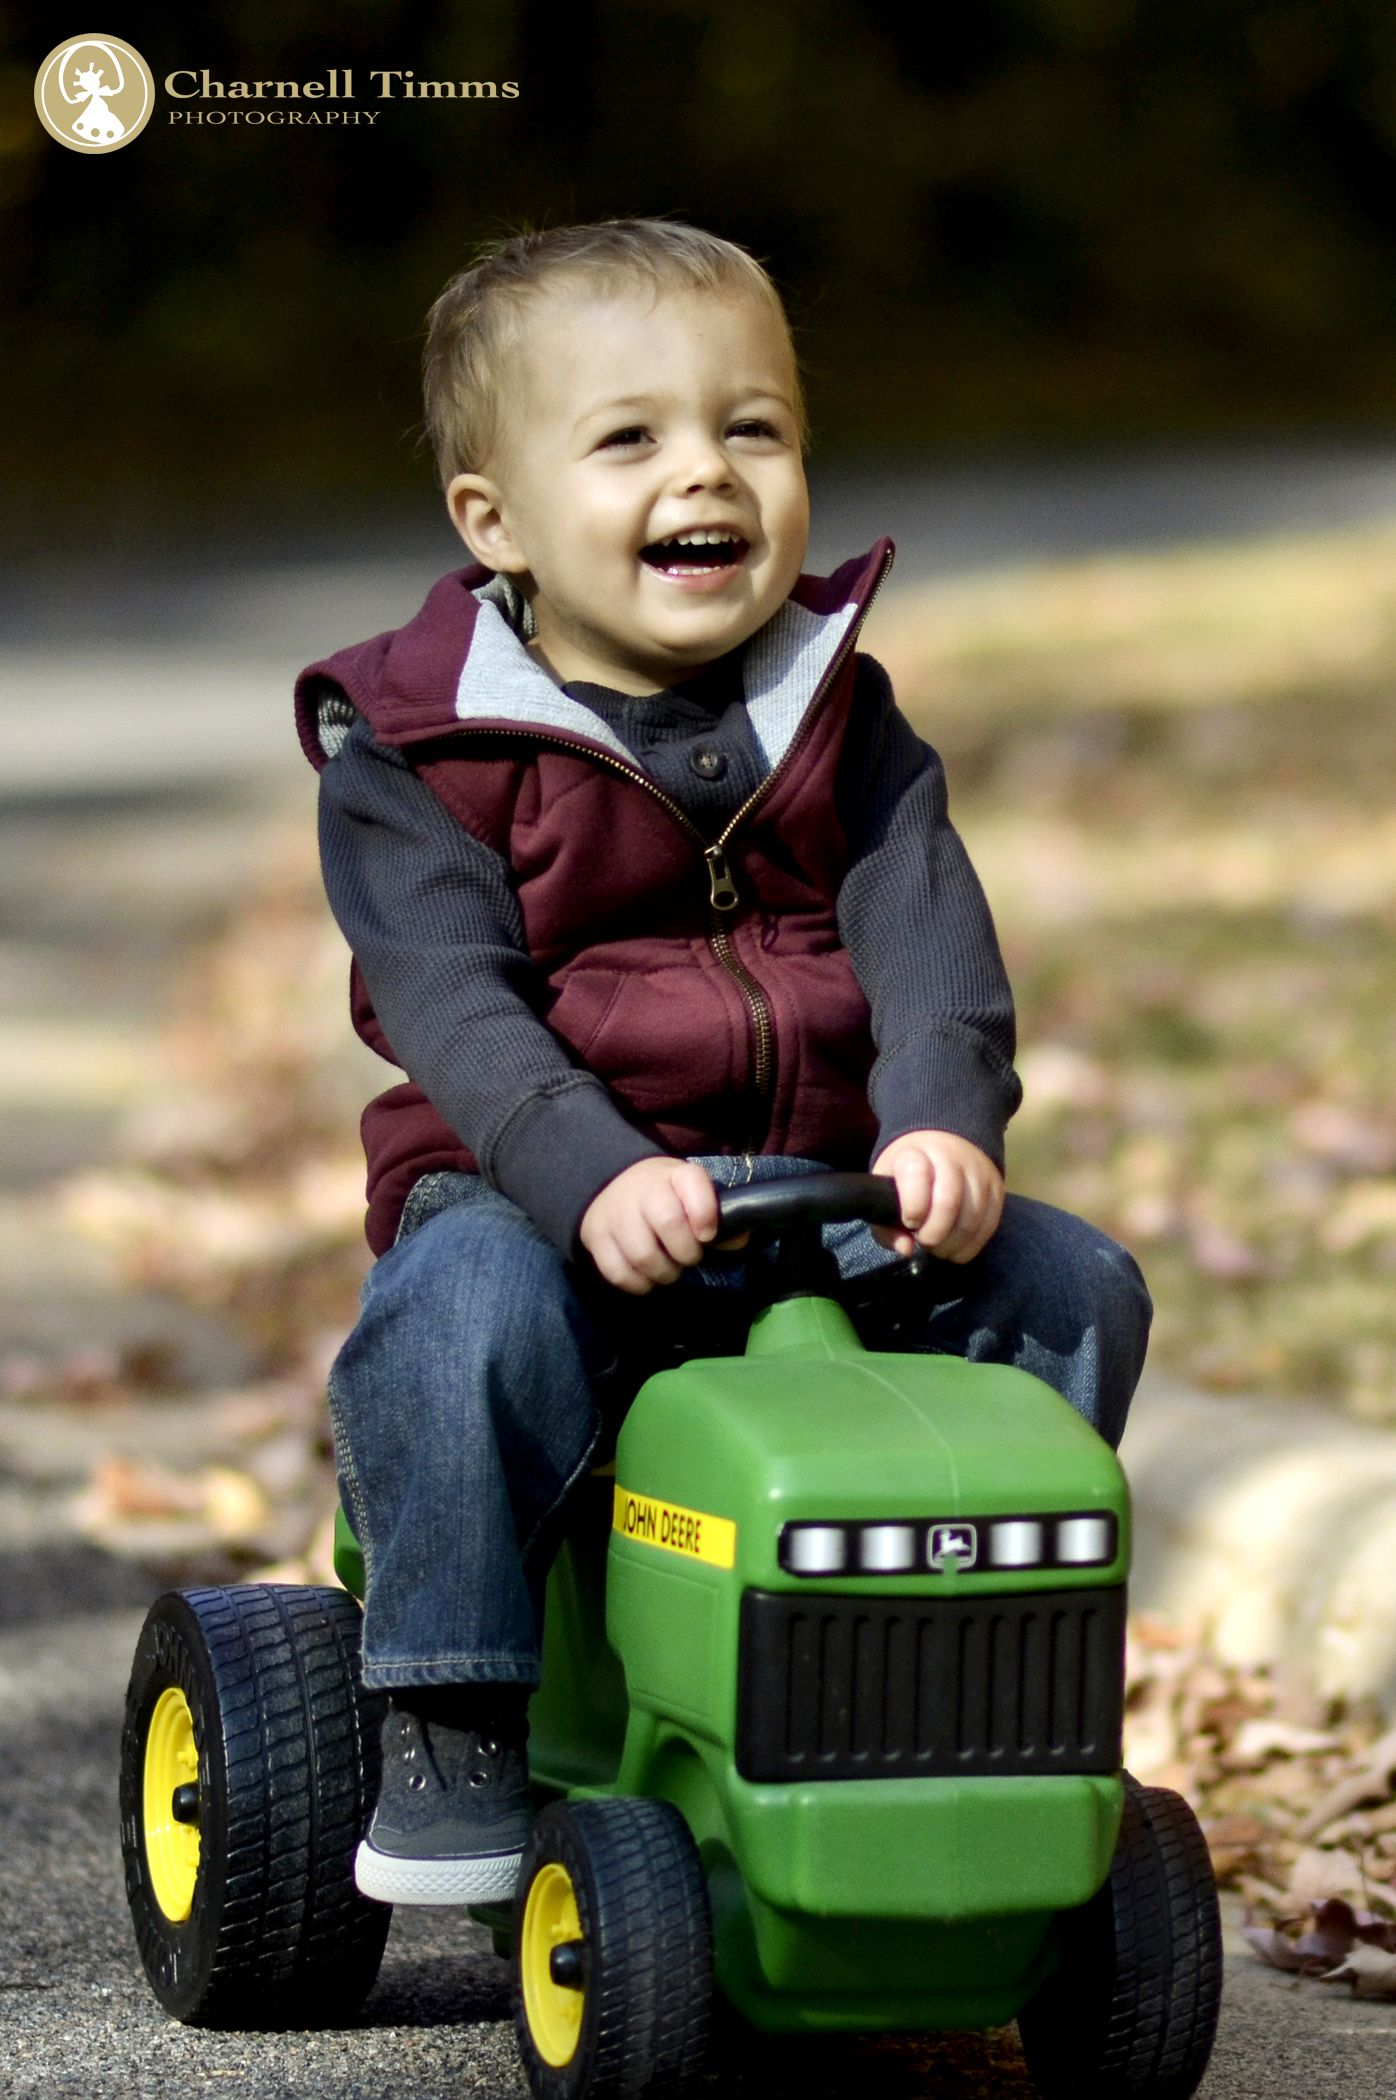 Little boys and their favourite toys. Charnell Timms Photography